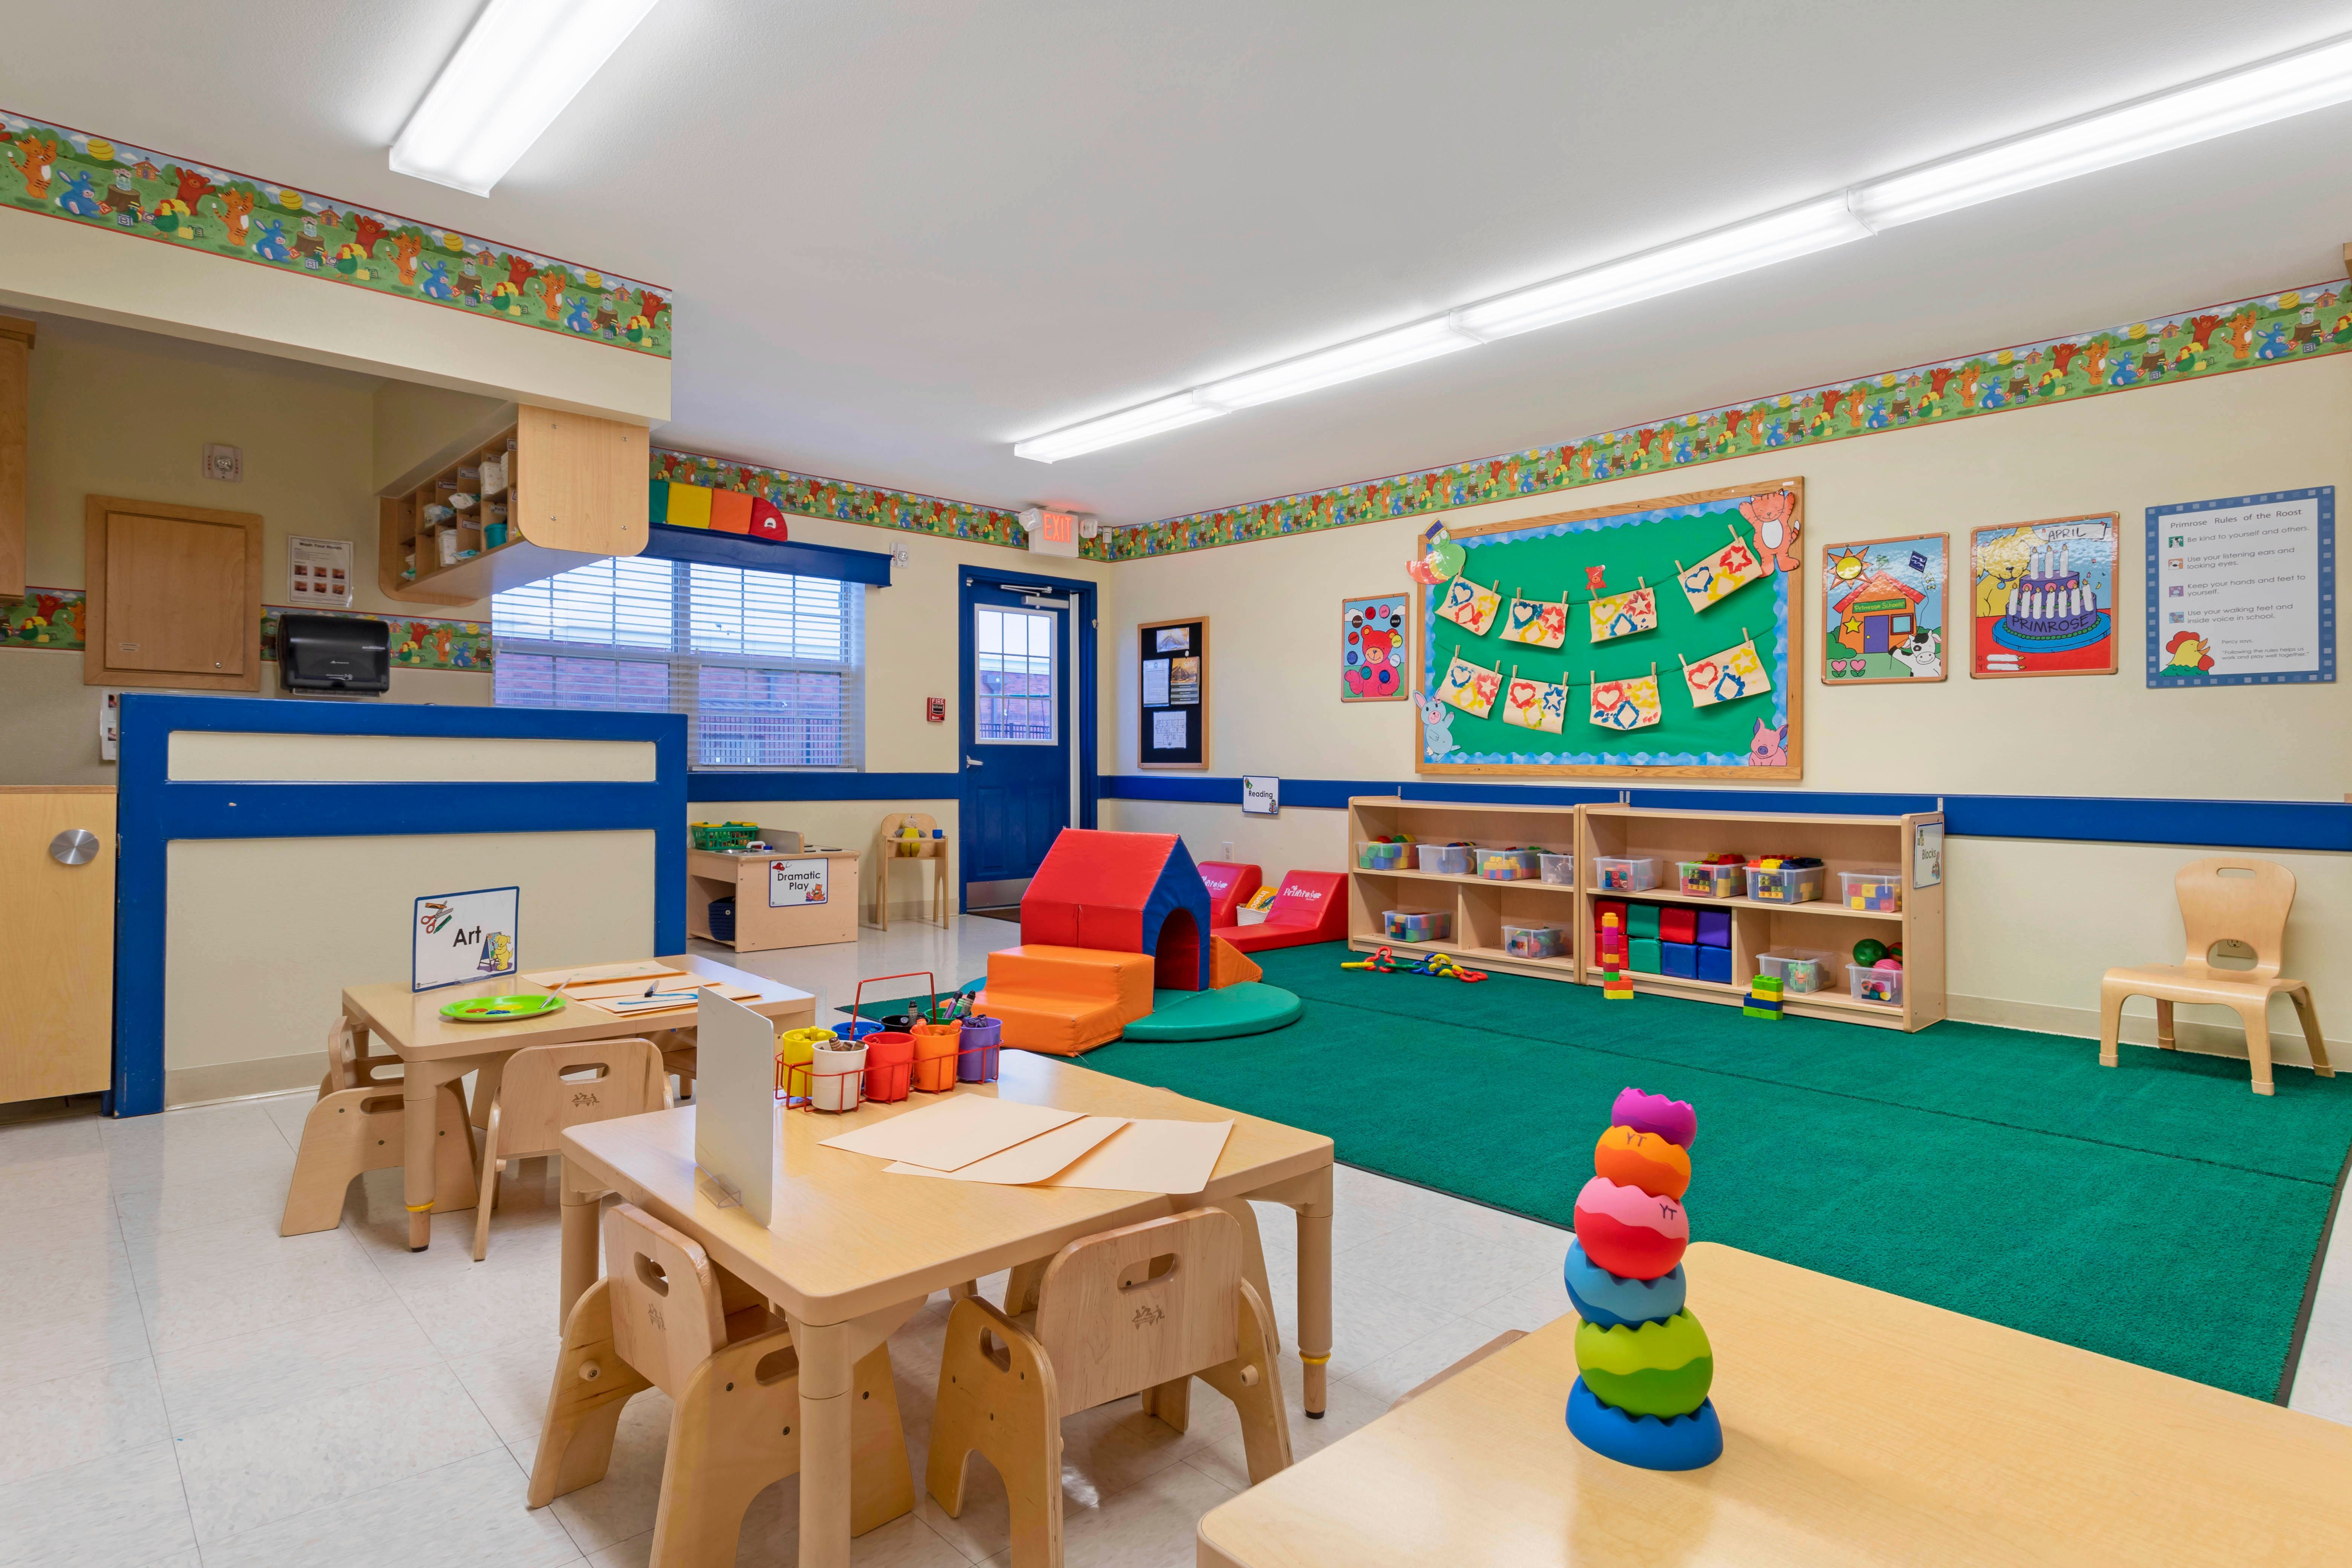 Primrose School of Clear Lake inside classrooms, virtual tour, daycare child care in Clear Lake, TX 77062